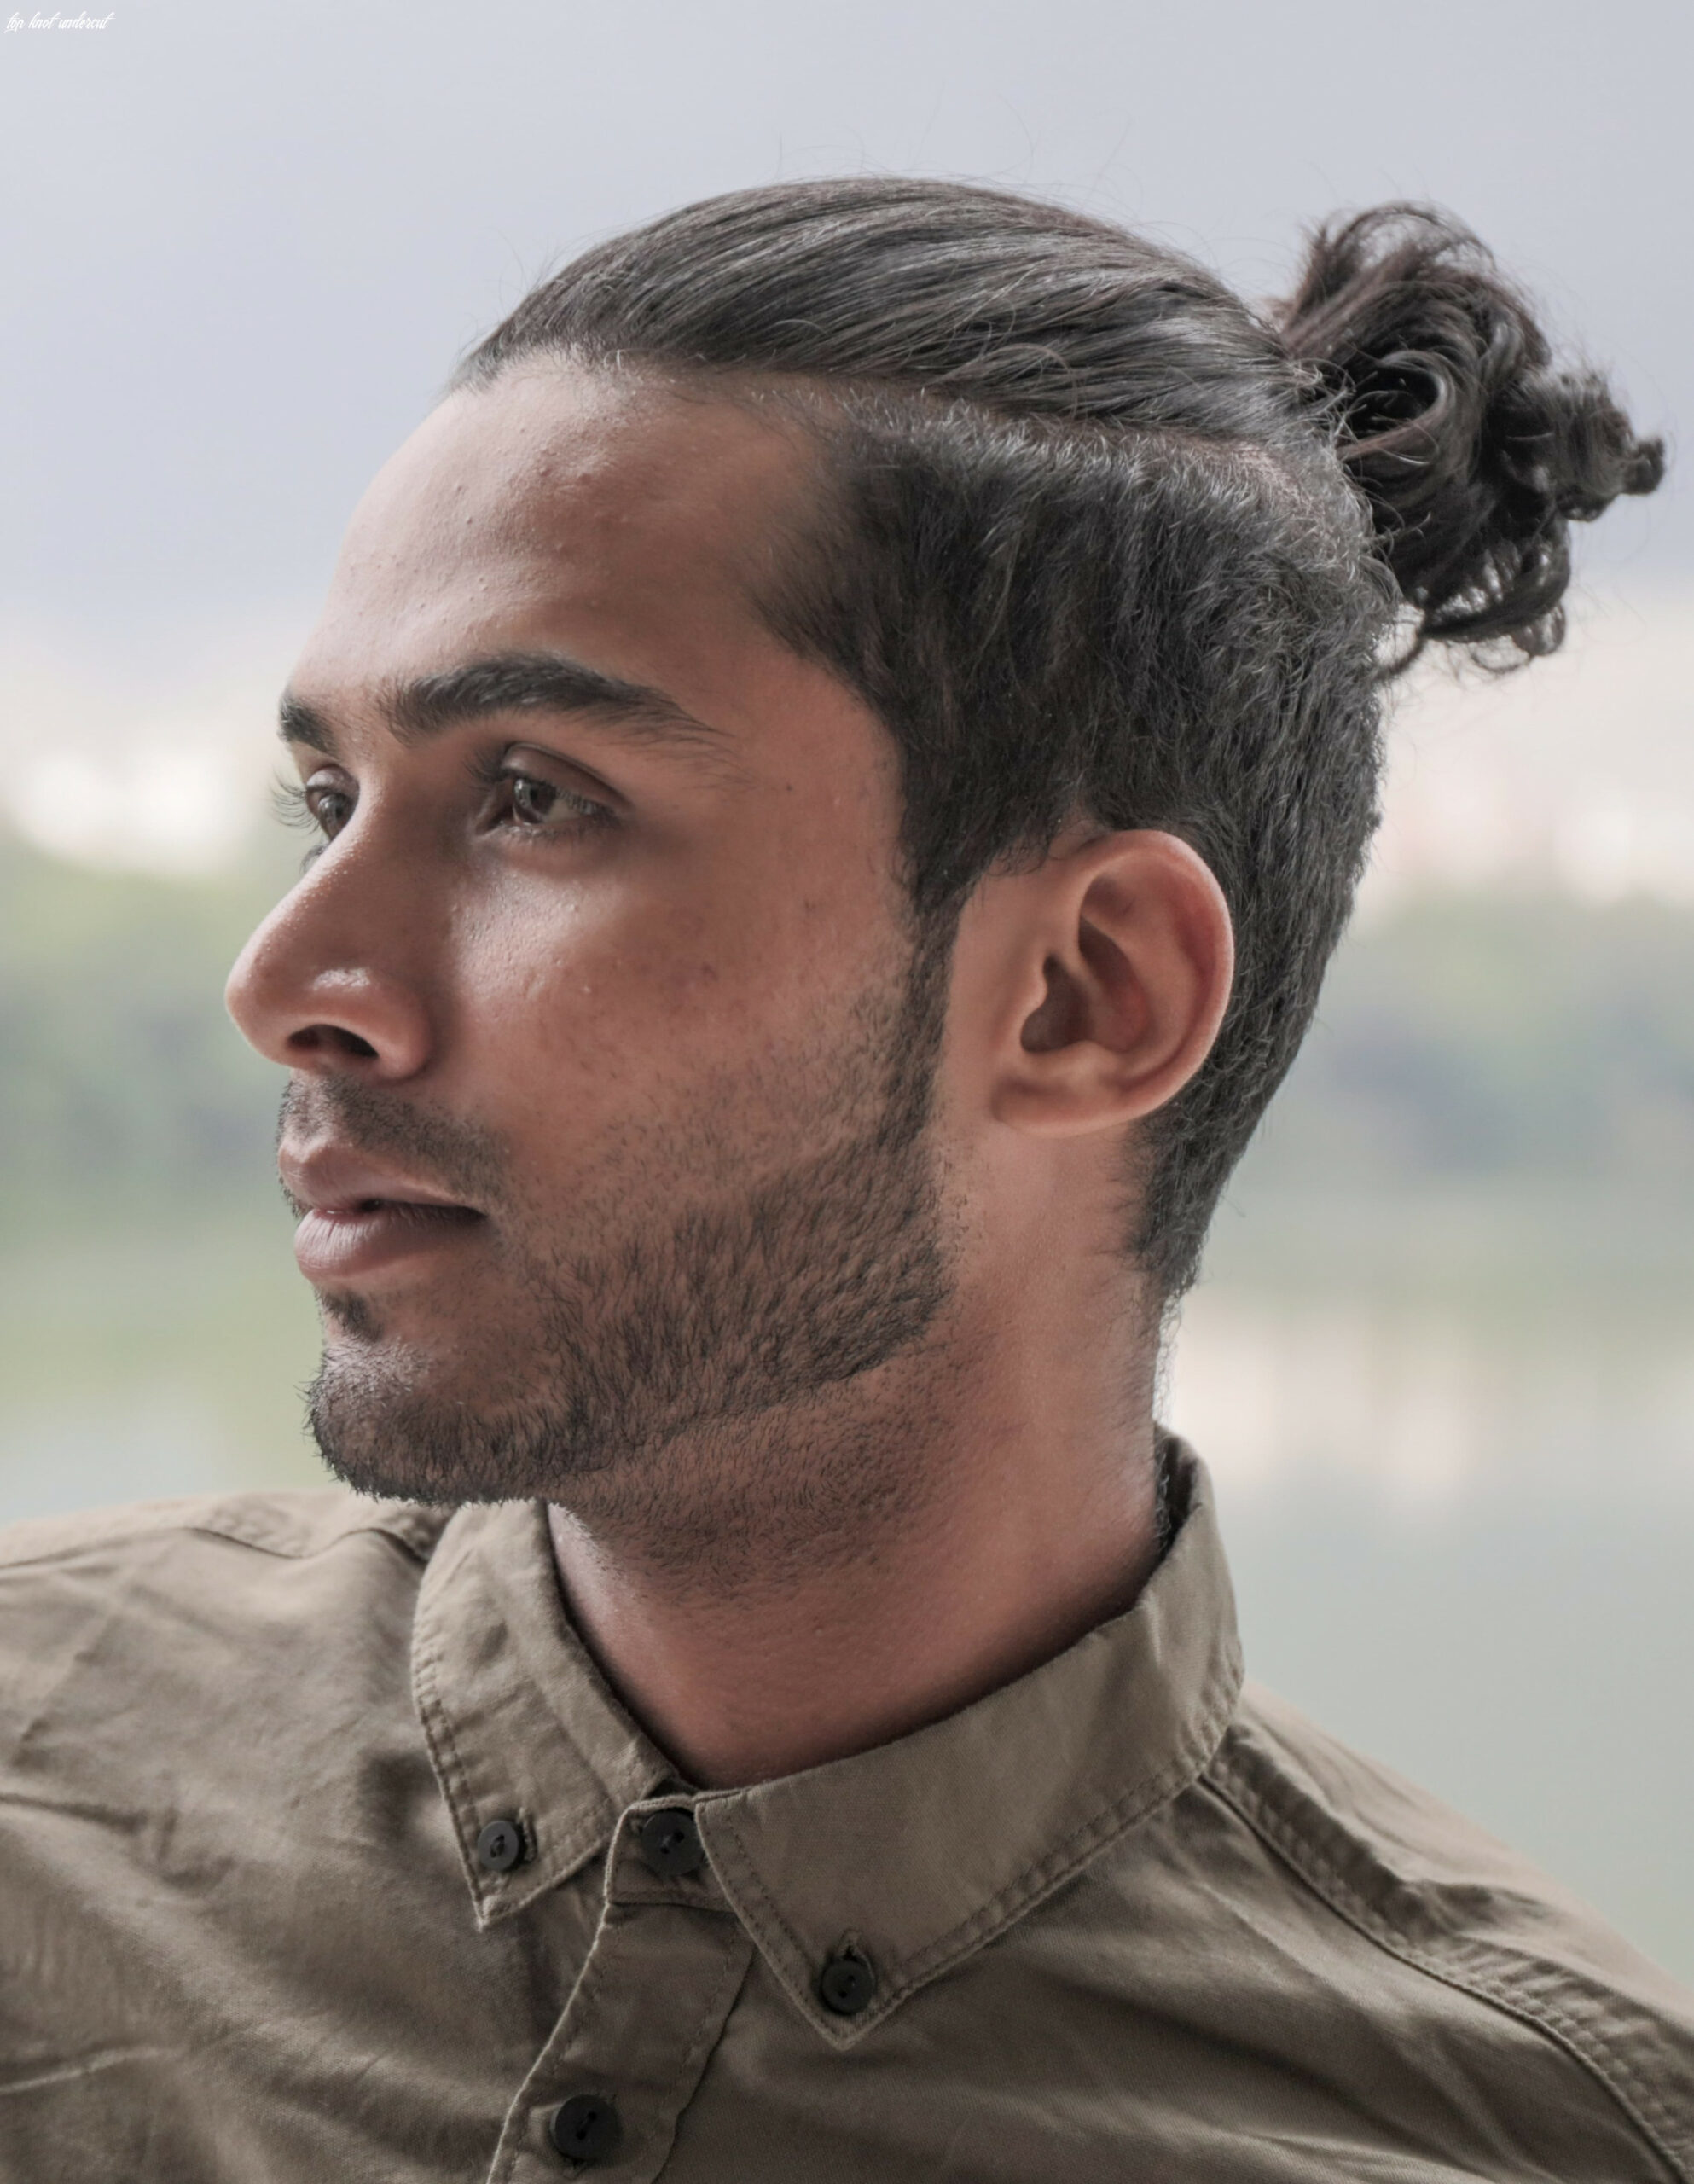 The top knot hairstyle visual guide for men (10 different styles) top knot undercut